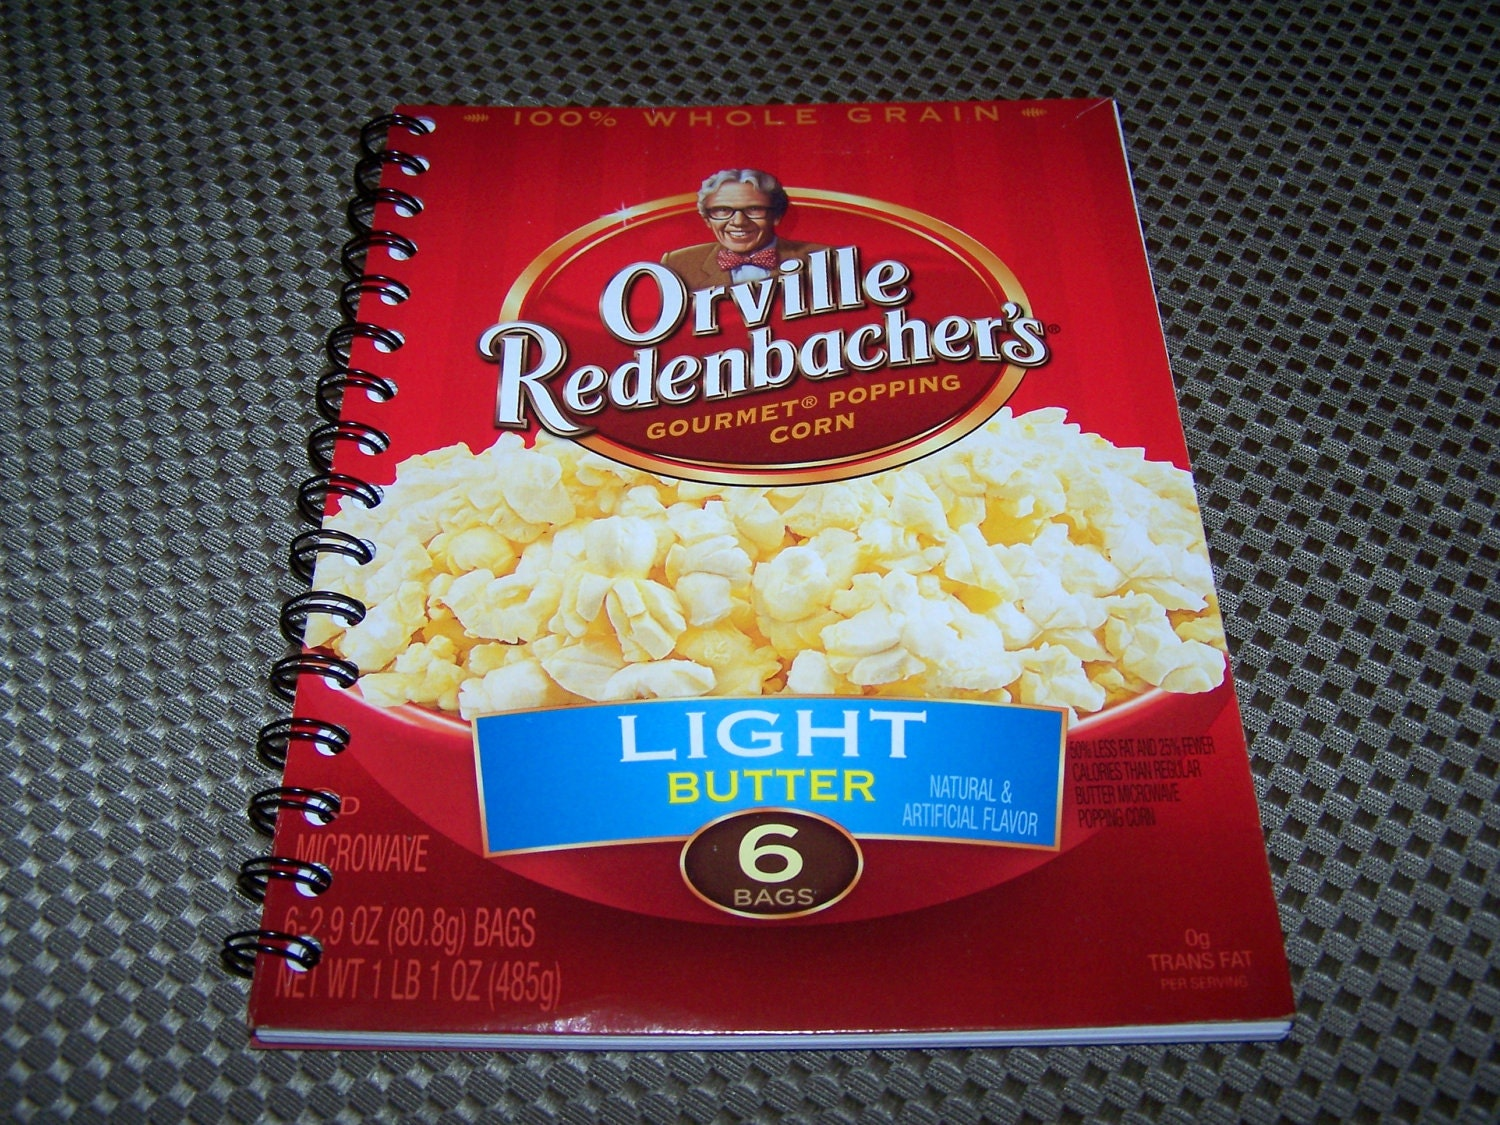 Upcycled Notebook Upcycled Notepad: ORVILLE REDENBACHER'S Popcorn Notebook Recyled 50 Page Spiral Bound Notebook